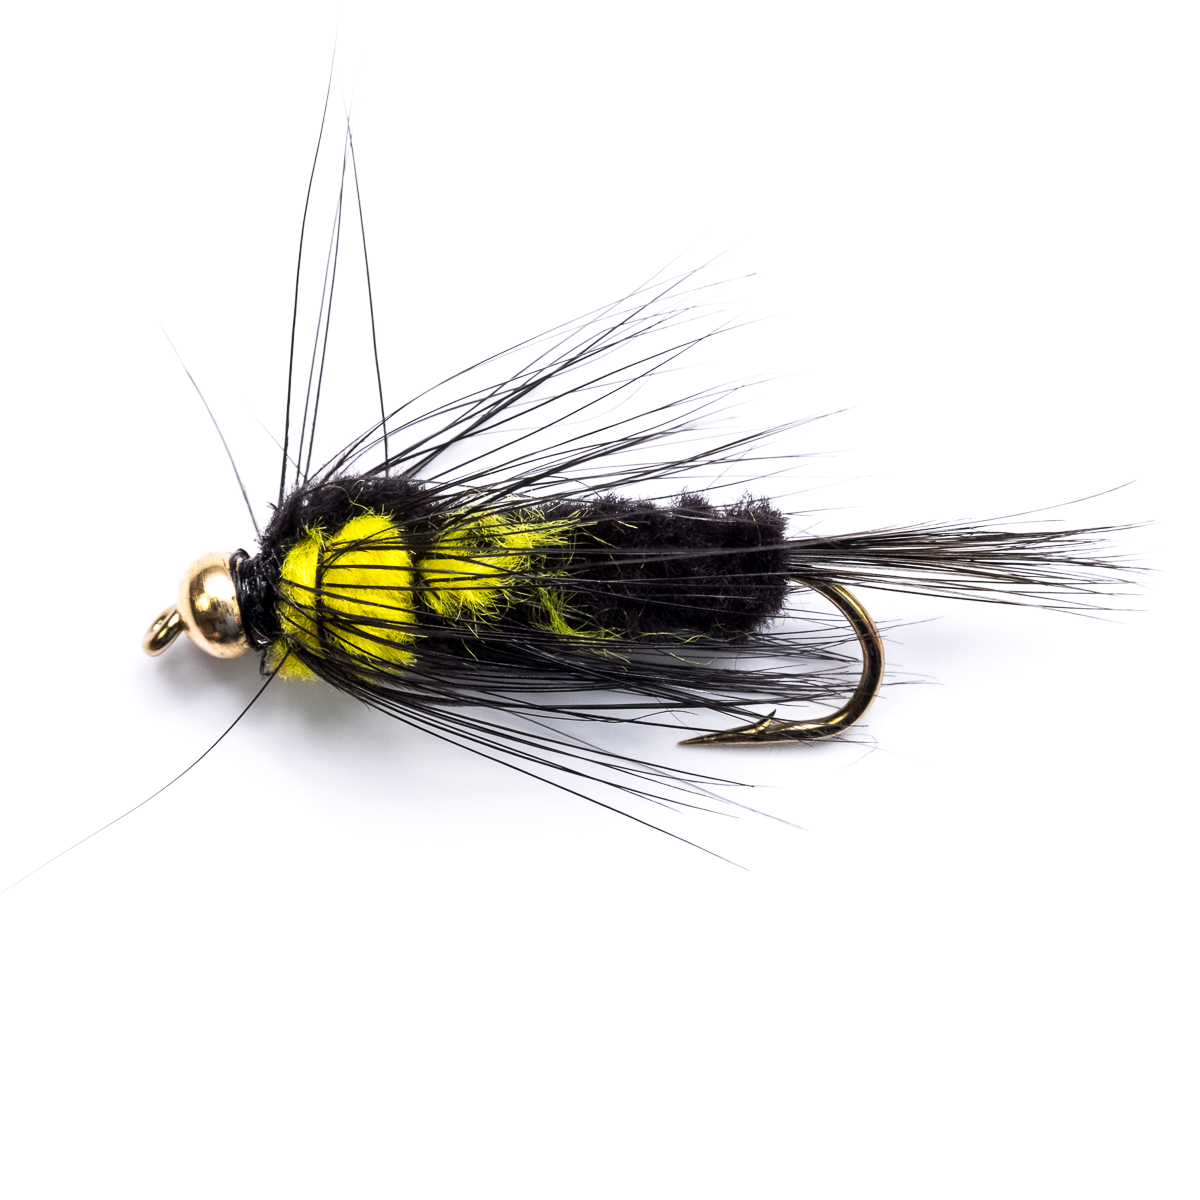 18 gold head montana nymphs trout fly fishing flies long shank, Fly Fishing Bait